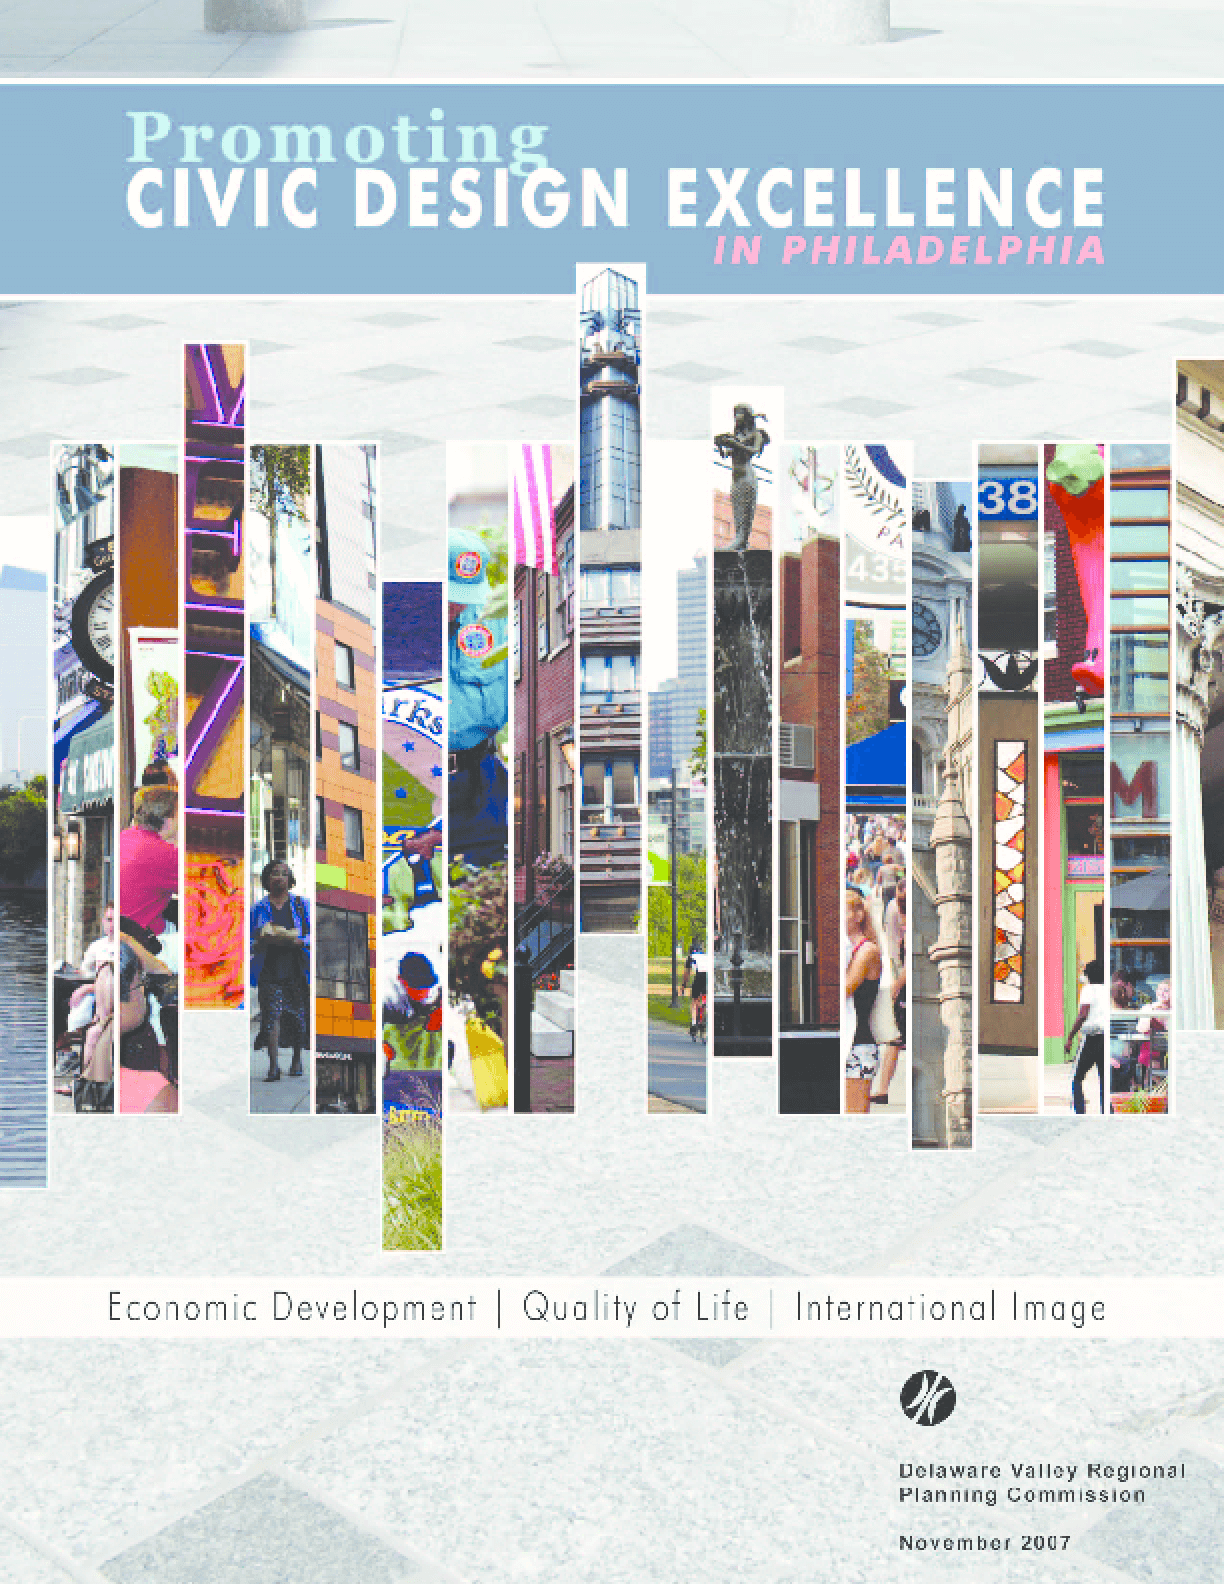 Promoting Civic Design Excellence in Philadelphia